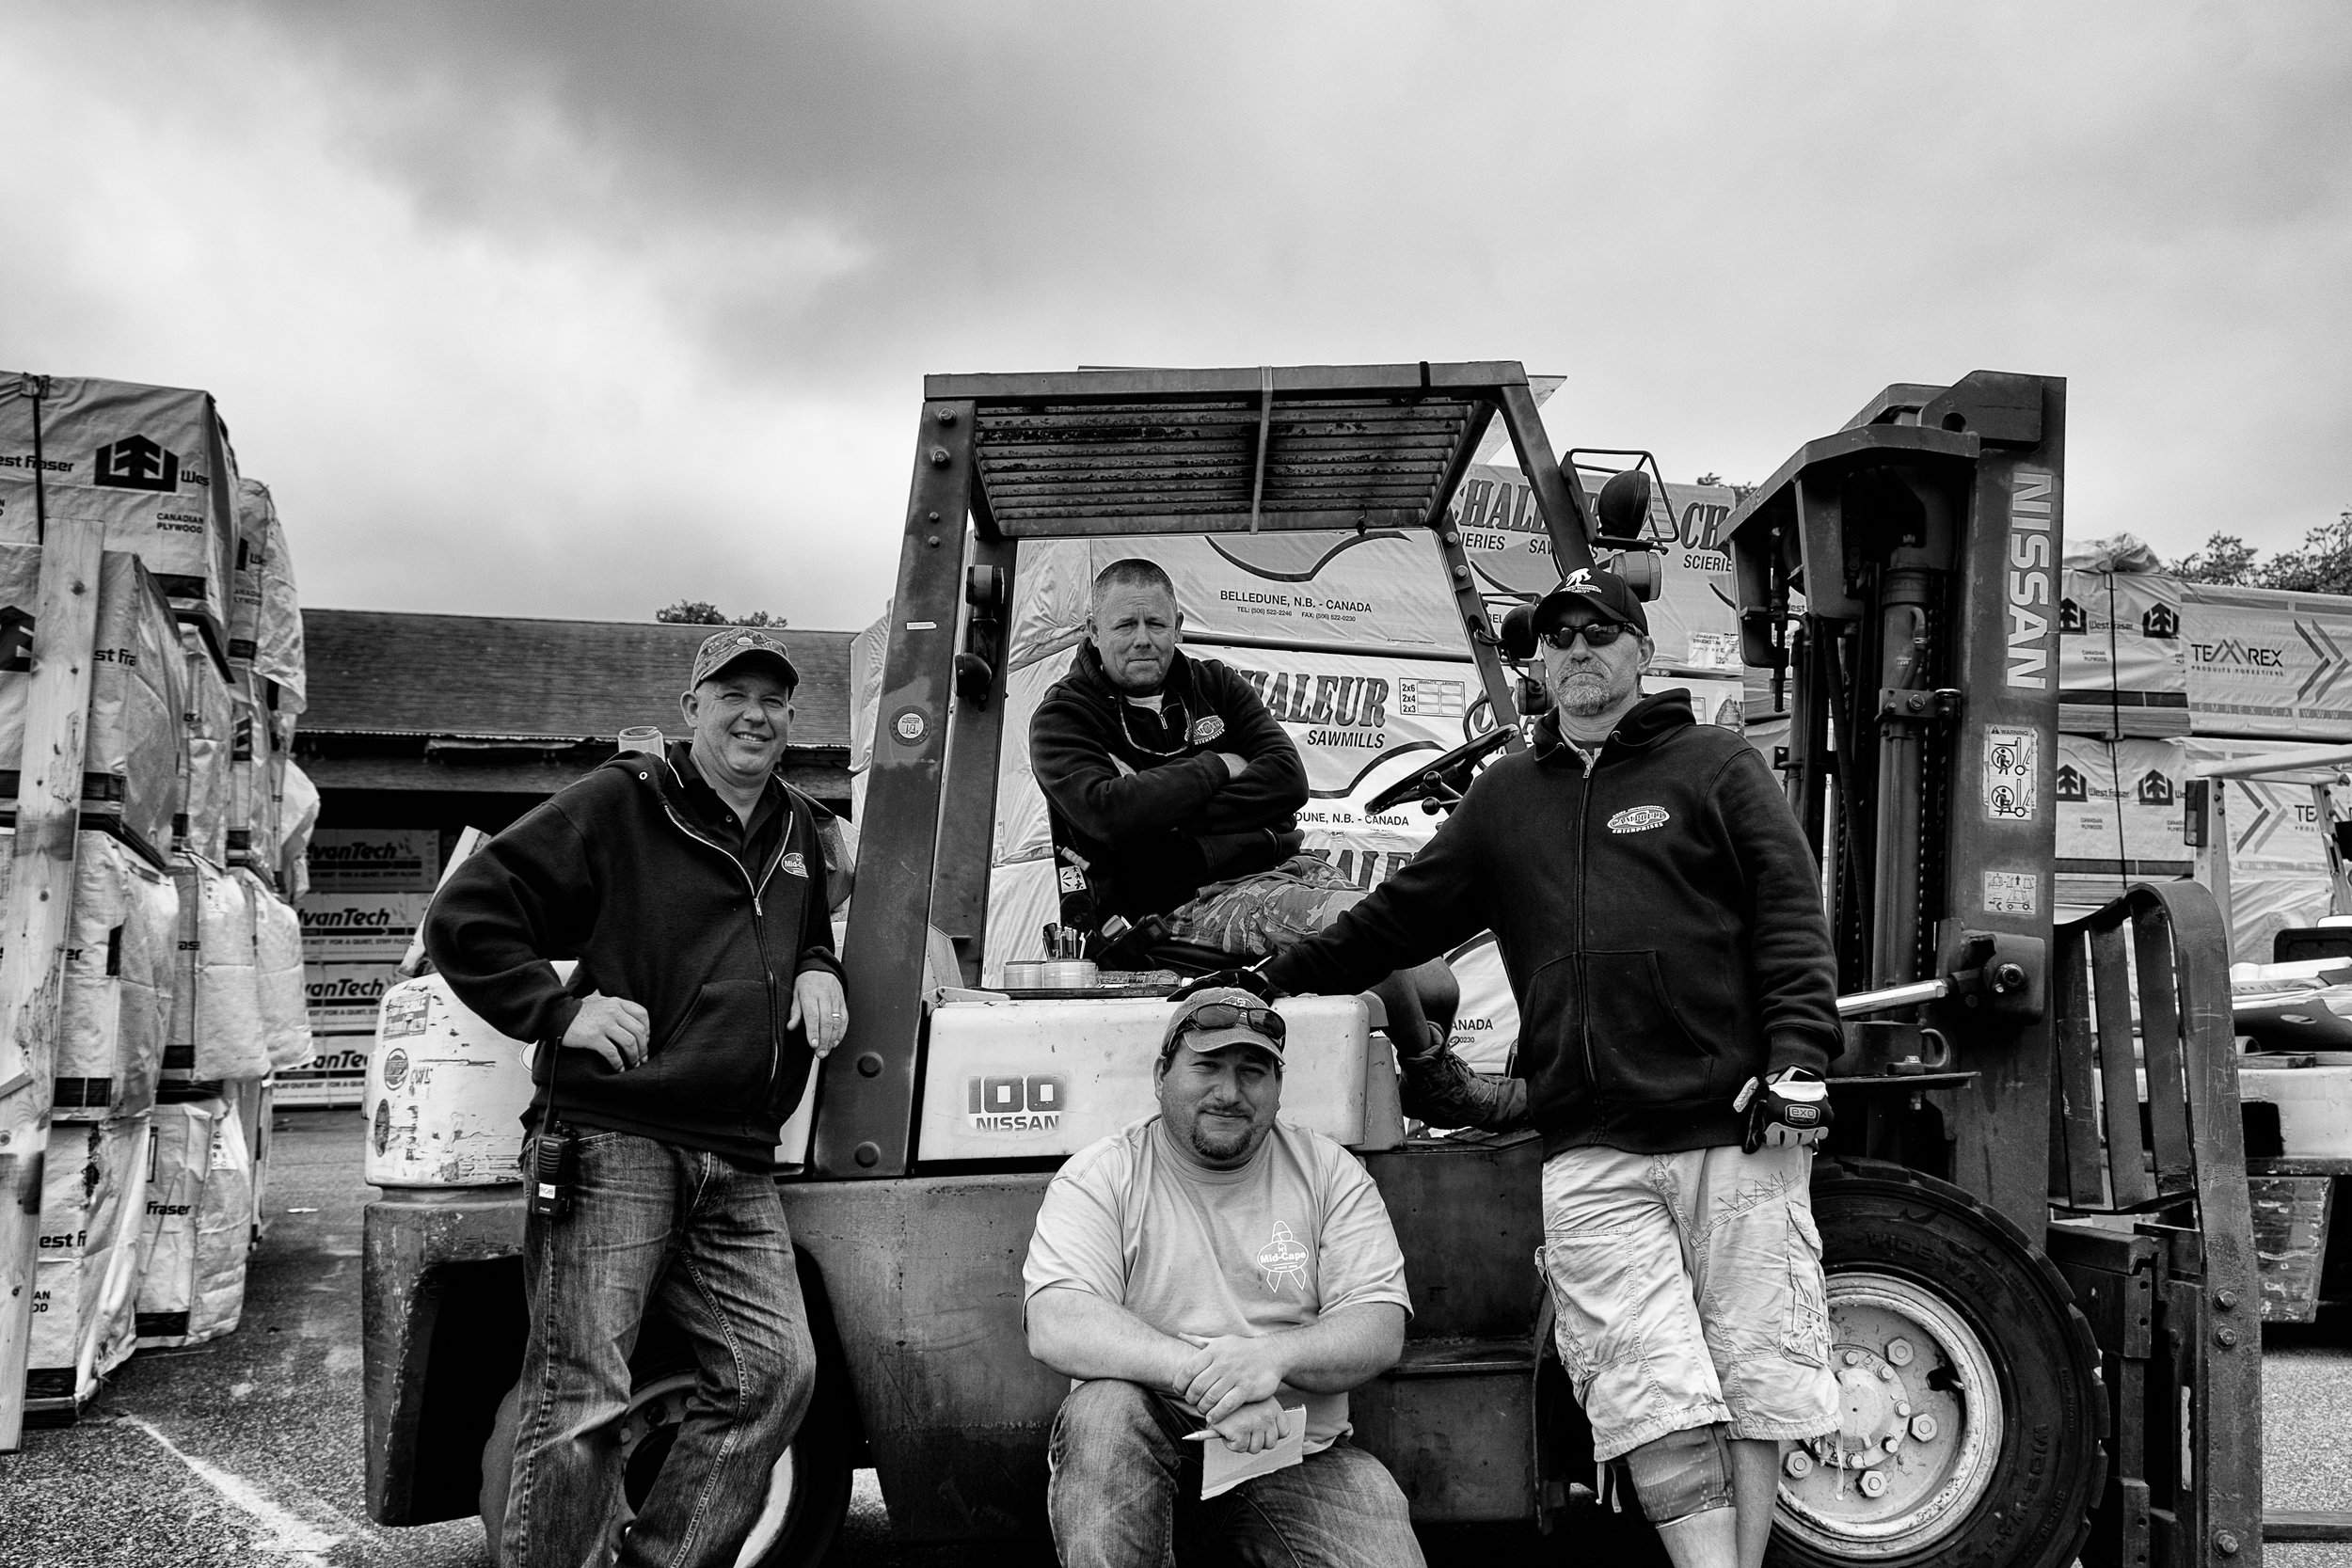 Rob, Chris, Andy and Jeff posing for a photo out in framing during a gray day in September